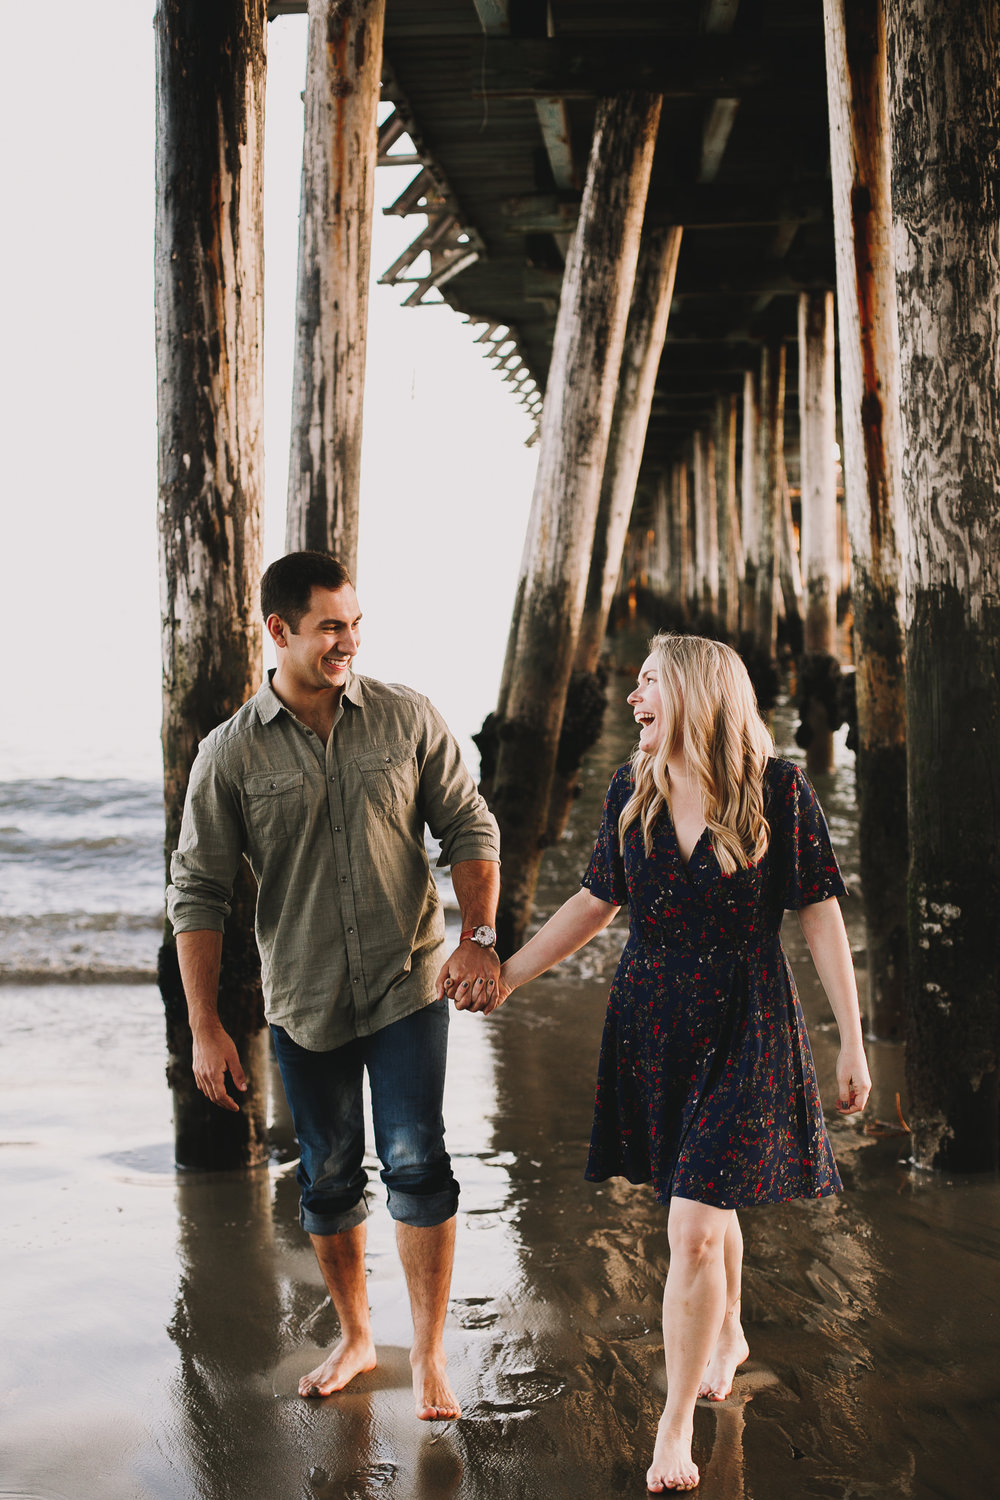 Archer Inspired Photography Capitola Beach Santa Cruz Wedding Engagement Lifestyle Session Photographer-126.jpg